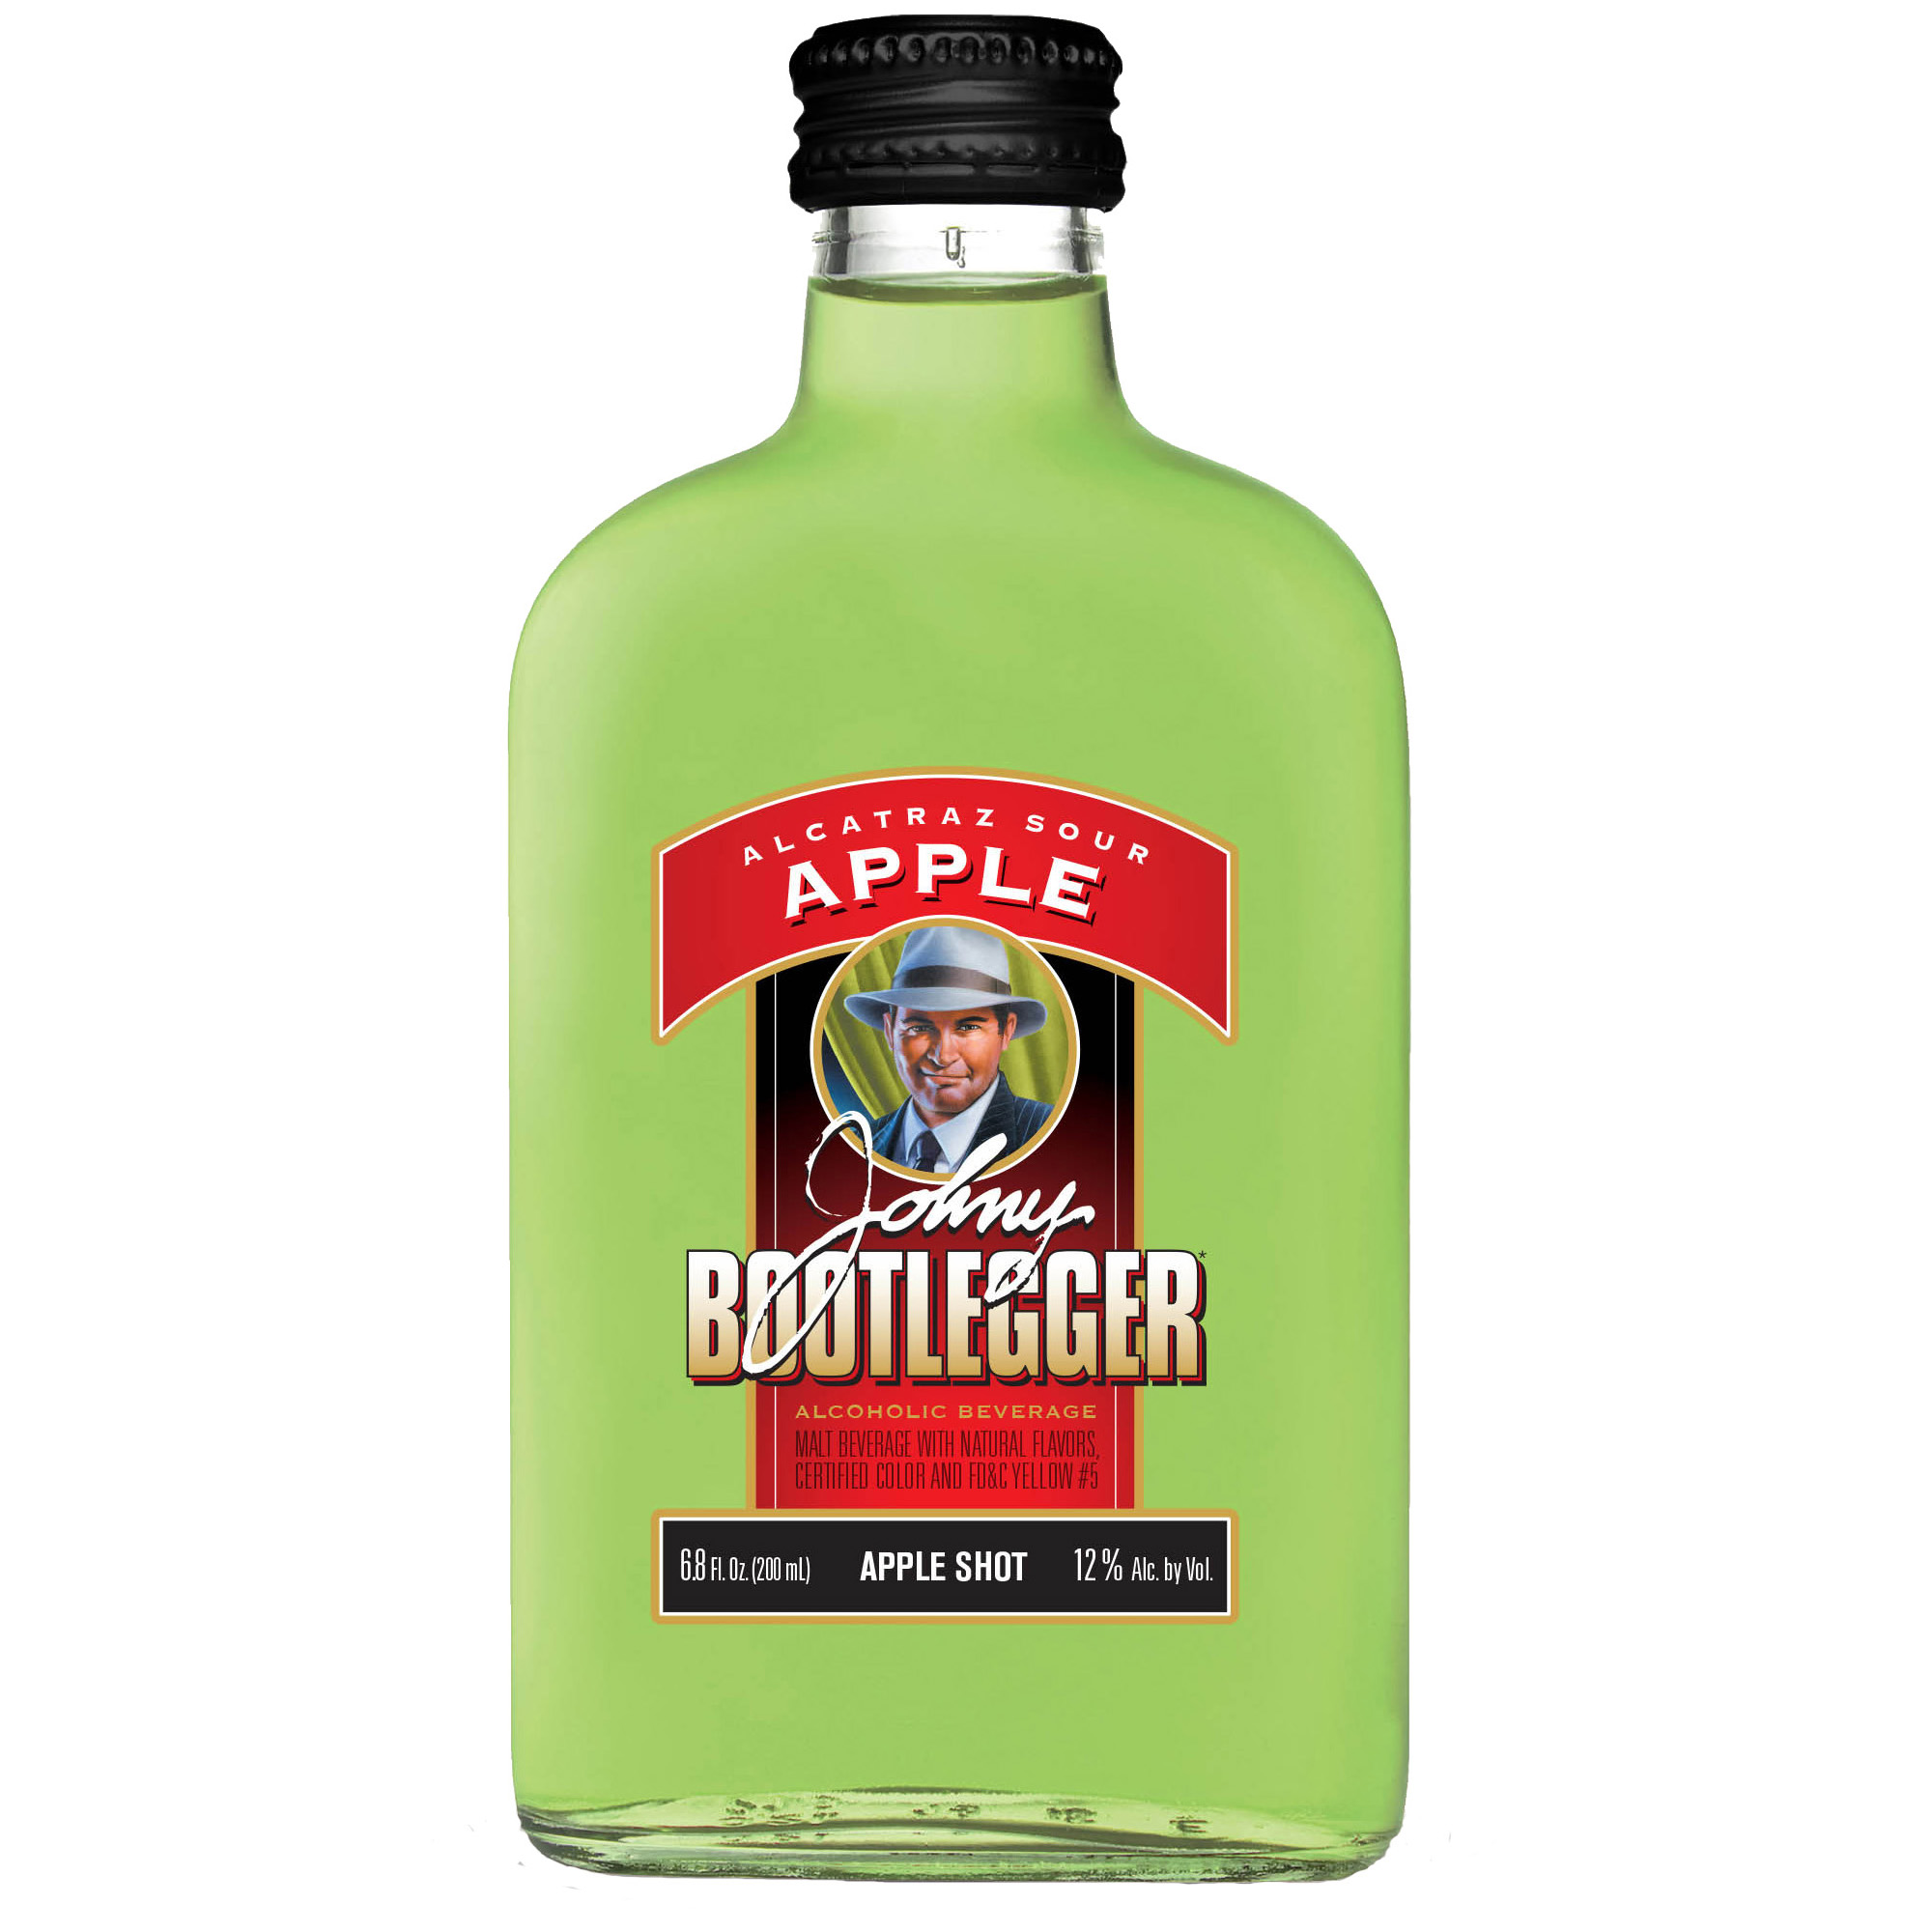 Johny Bootlegger, Alcatraz Sour Apple